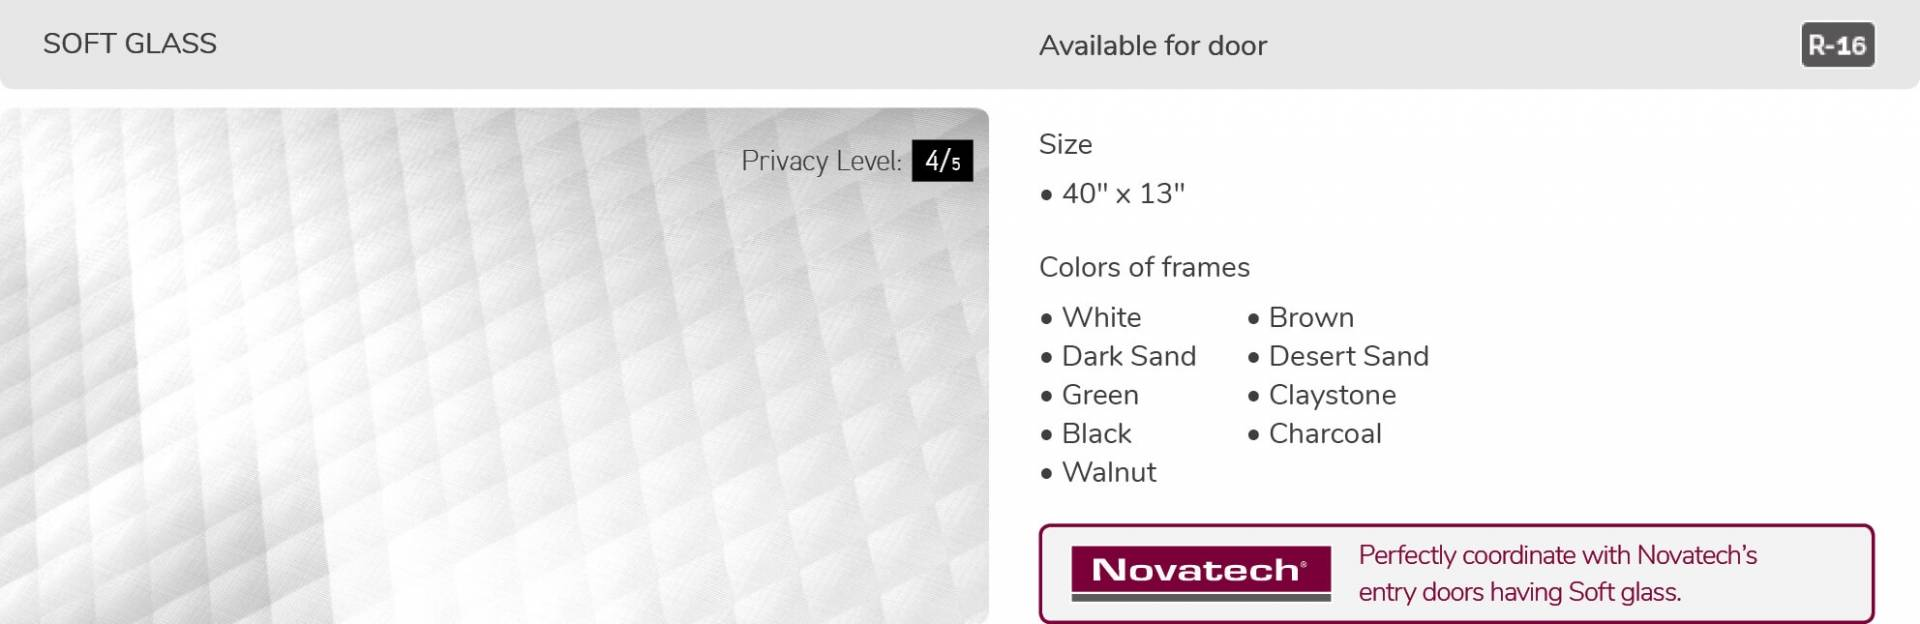 Soft Glass, 40' x 13', available for doors R-16